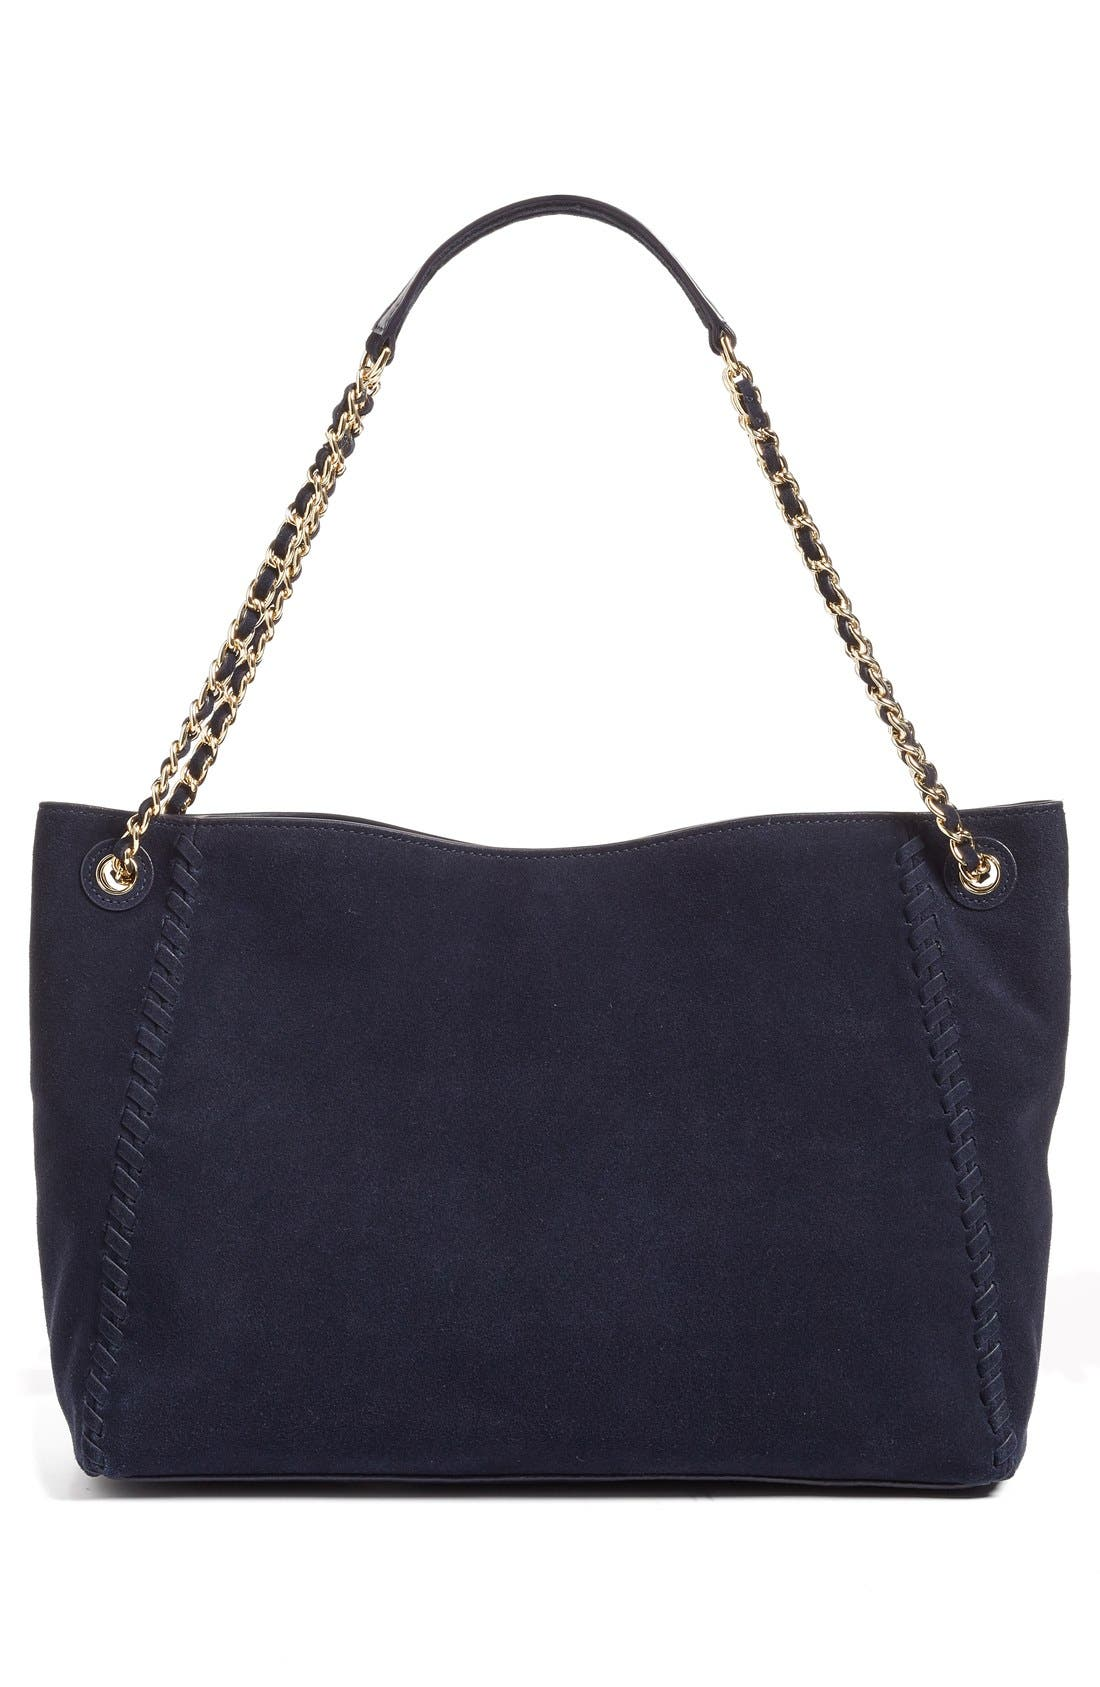 Alternate Image 3  - Tory Burch 'Marion' Suede Tote